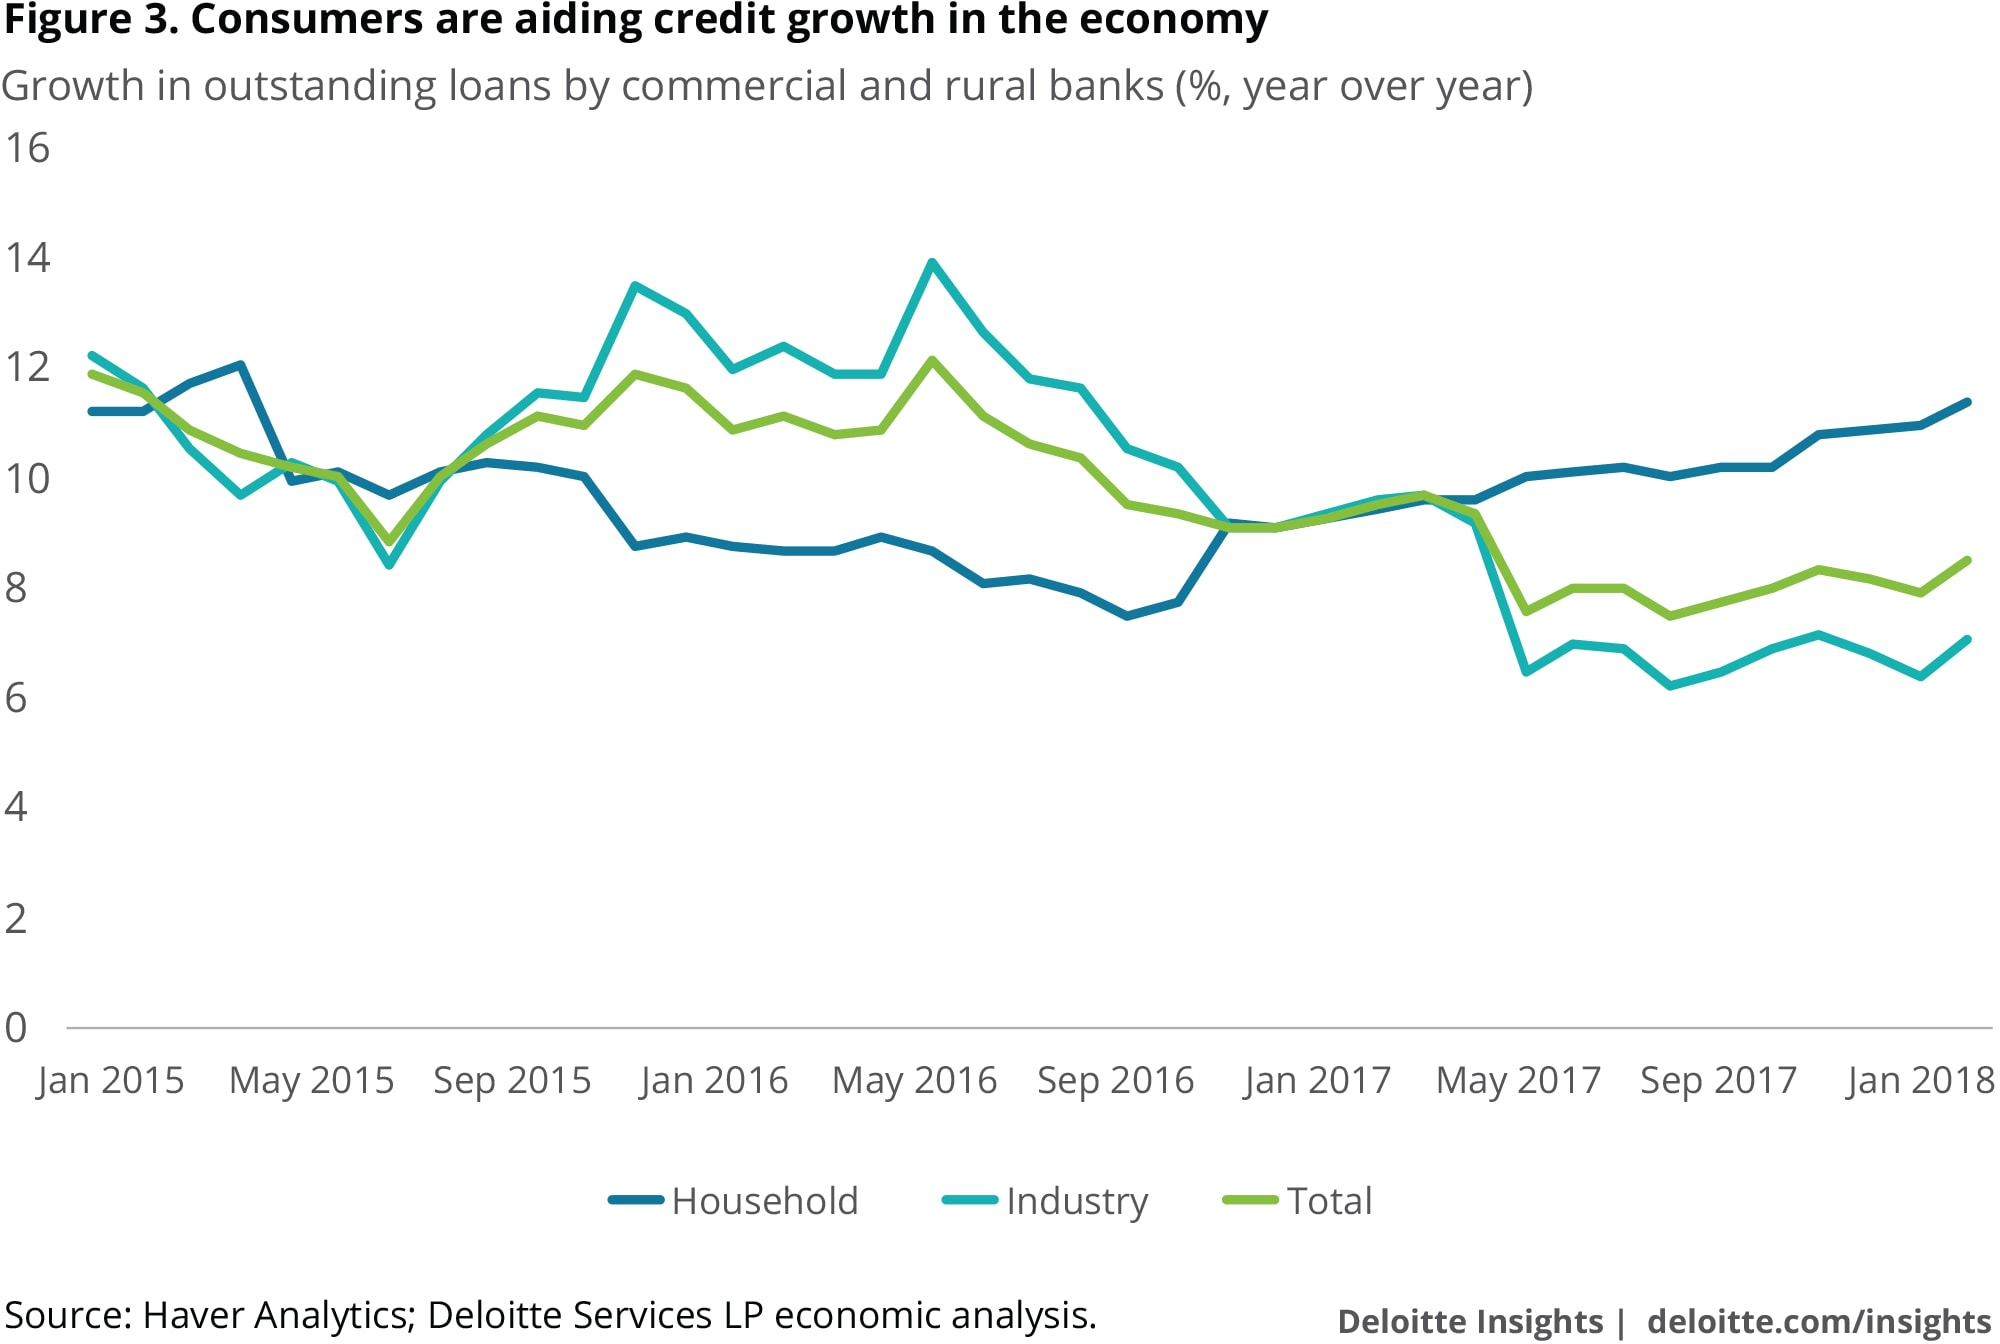 Consumers are aiding credit growth in the economy